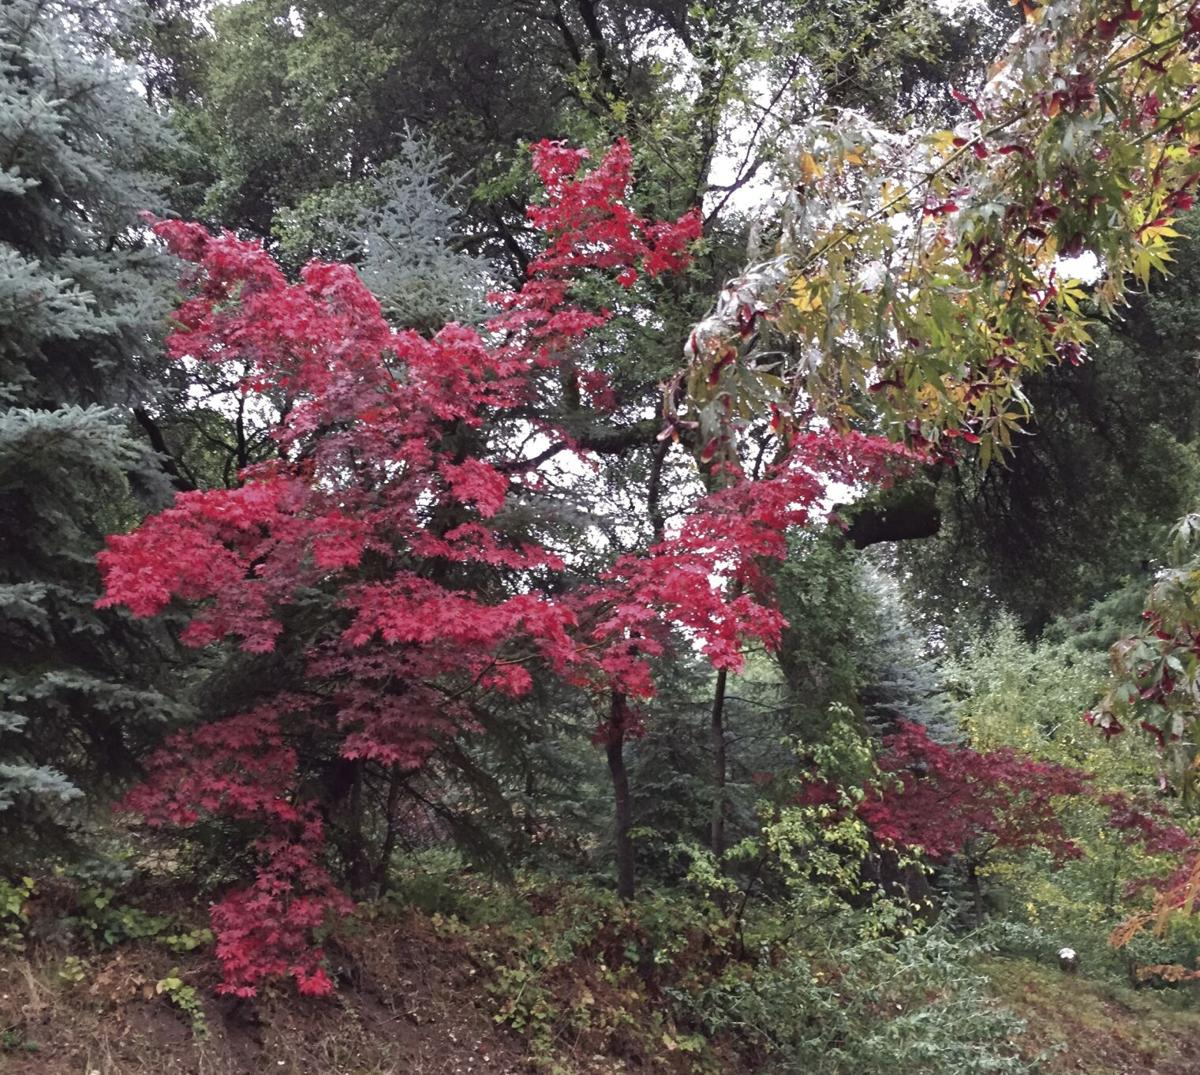 SIGN OF THE TIMES An acer palmatum Japanese maple displaying brilliant fall color. — contributed